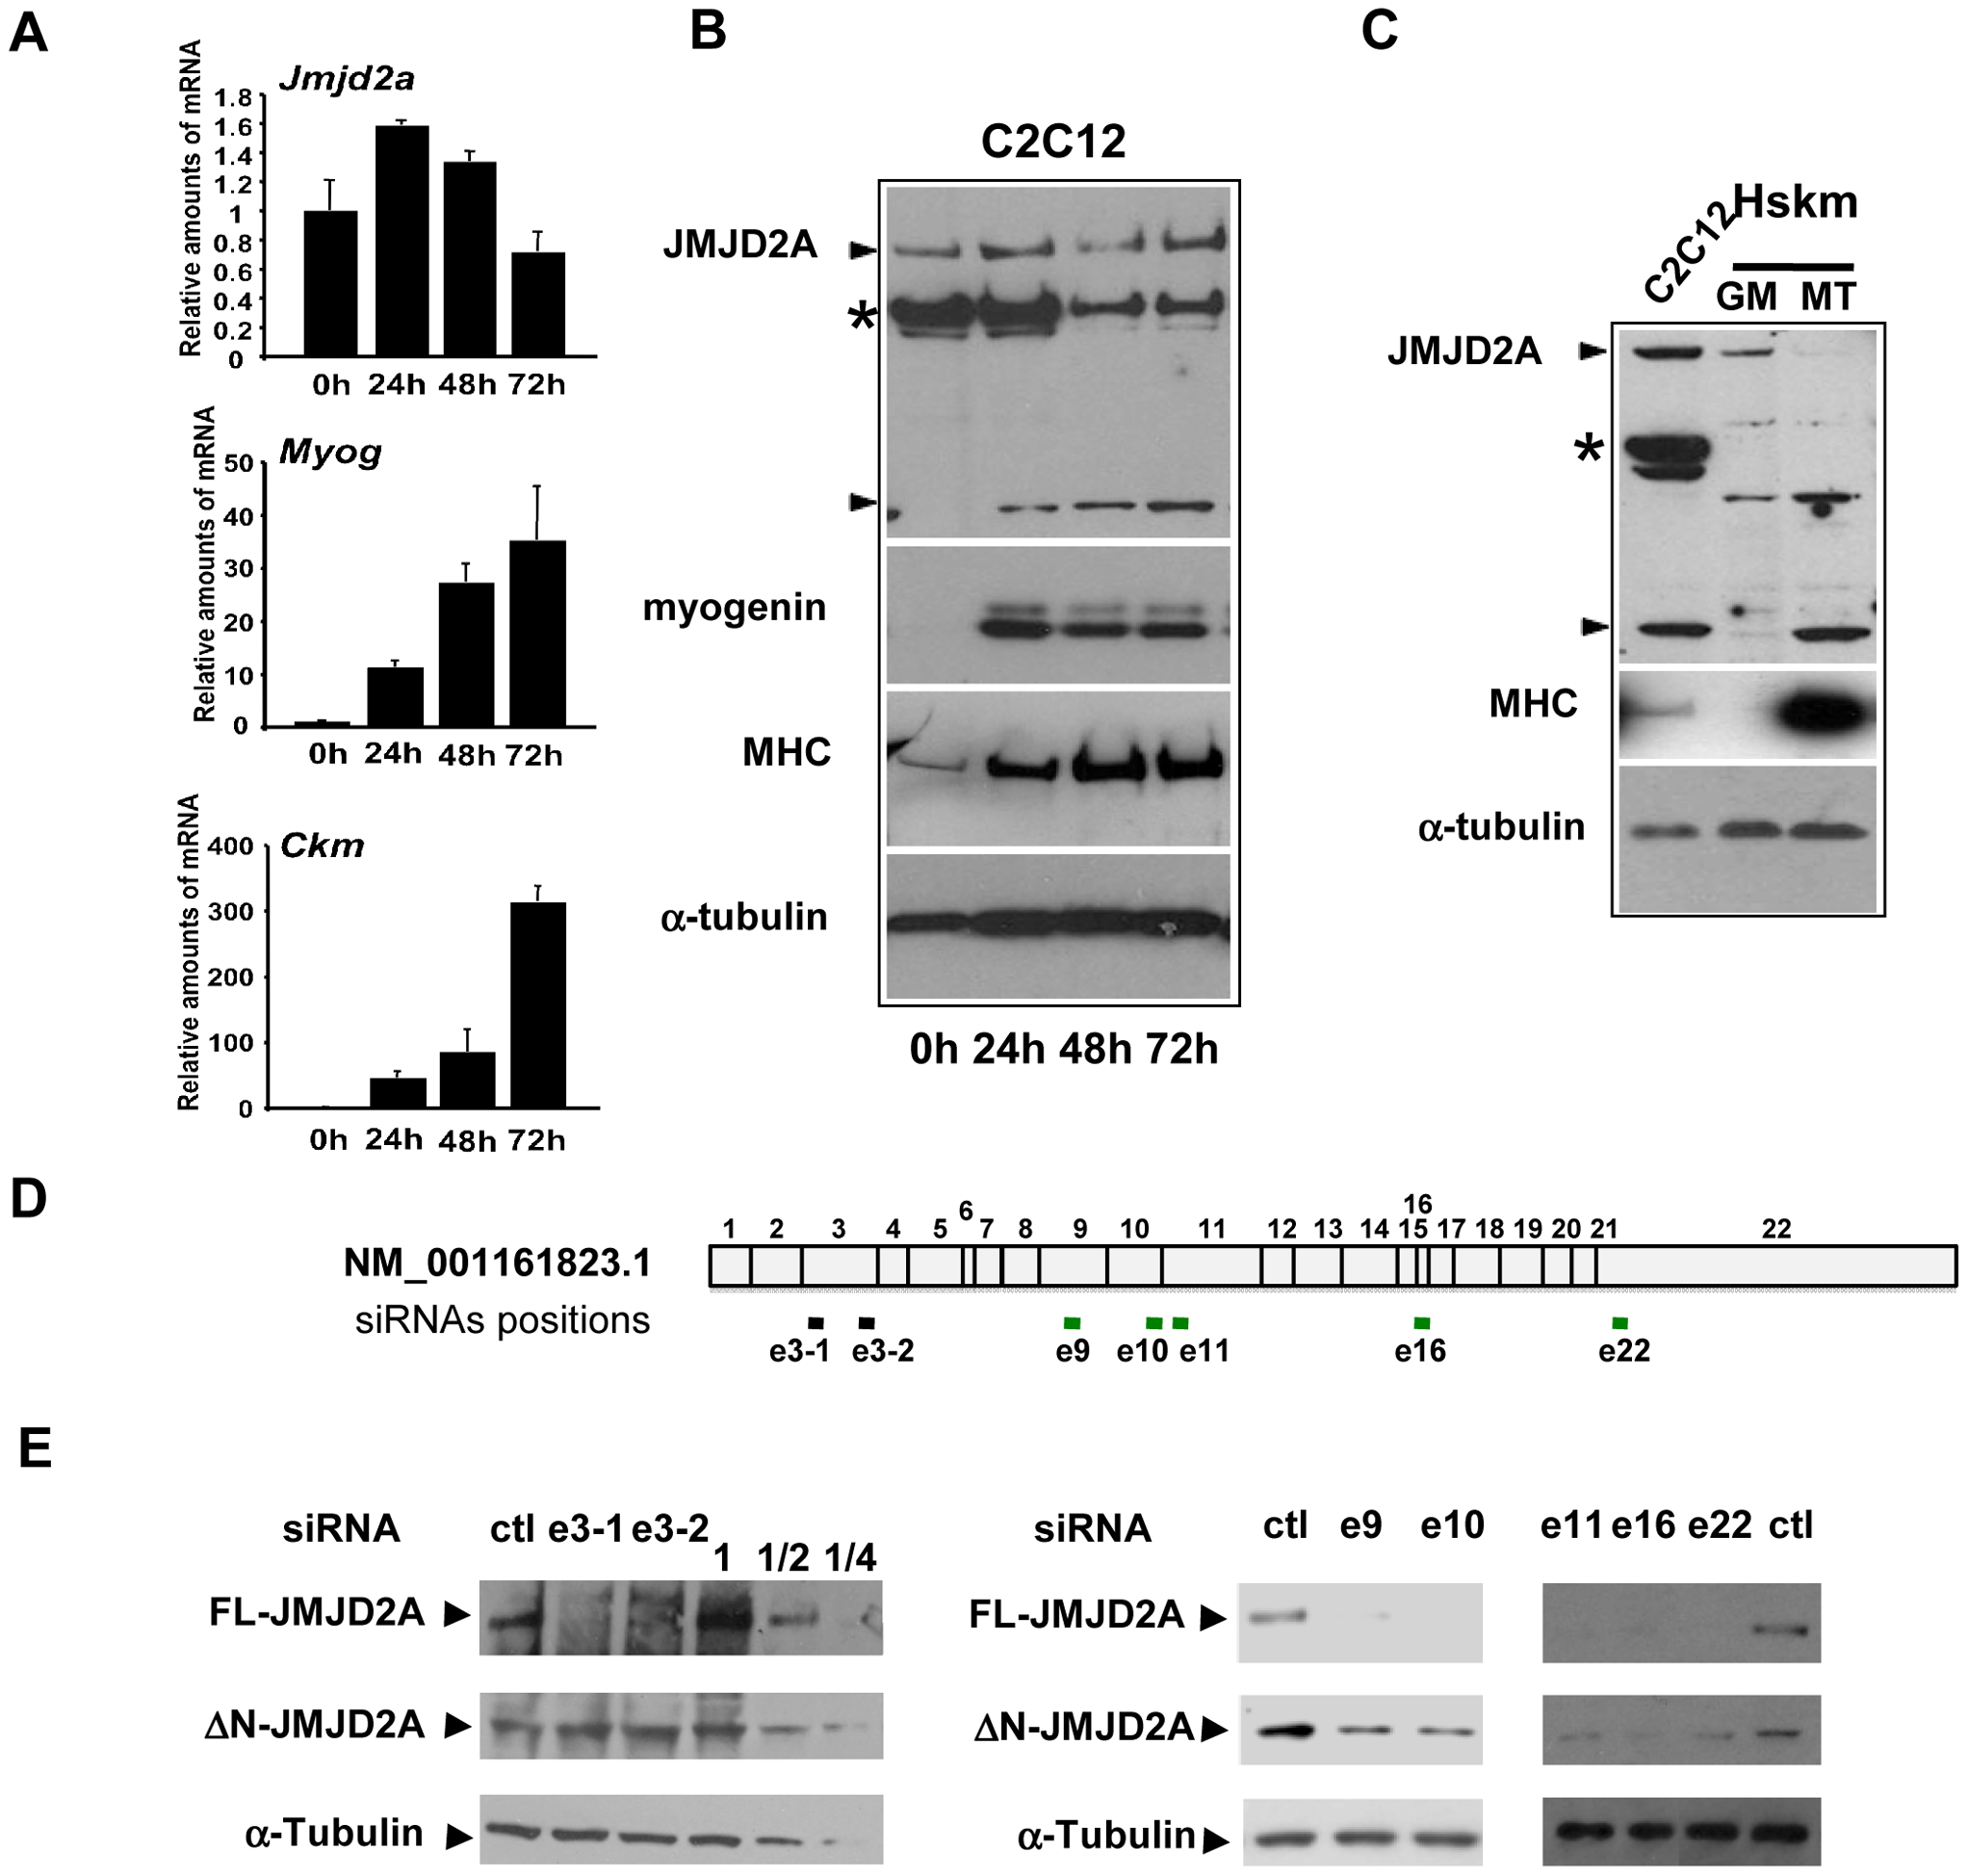 Expression of <i>JMJD2A</i> during muscle differentiation.